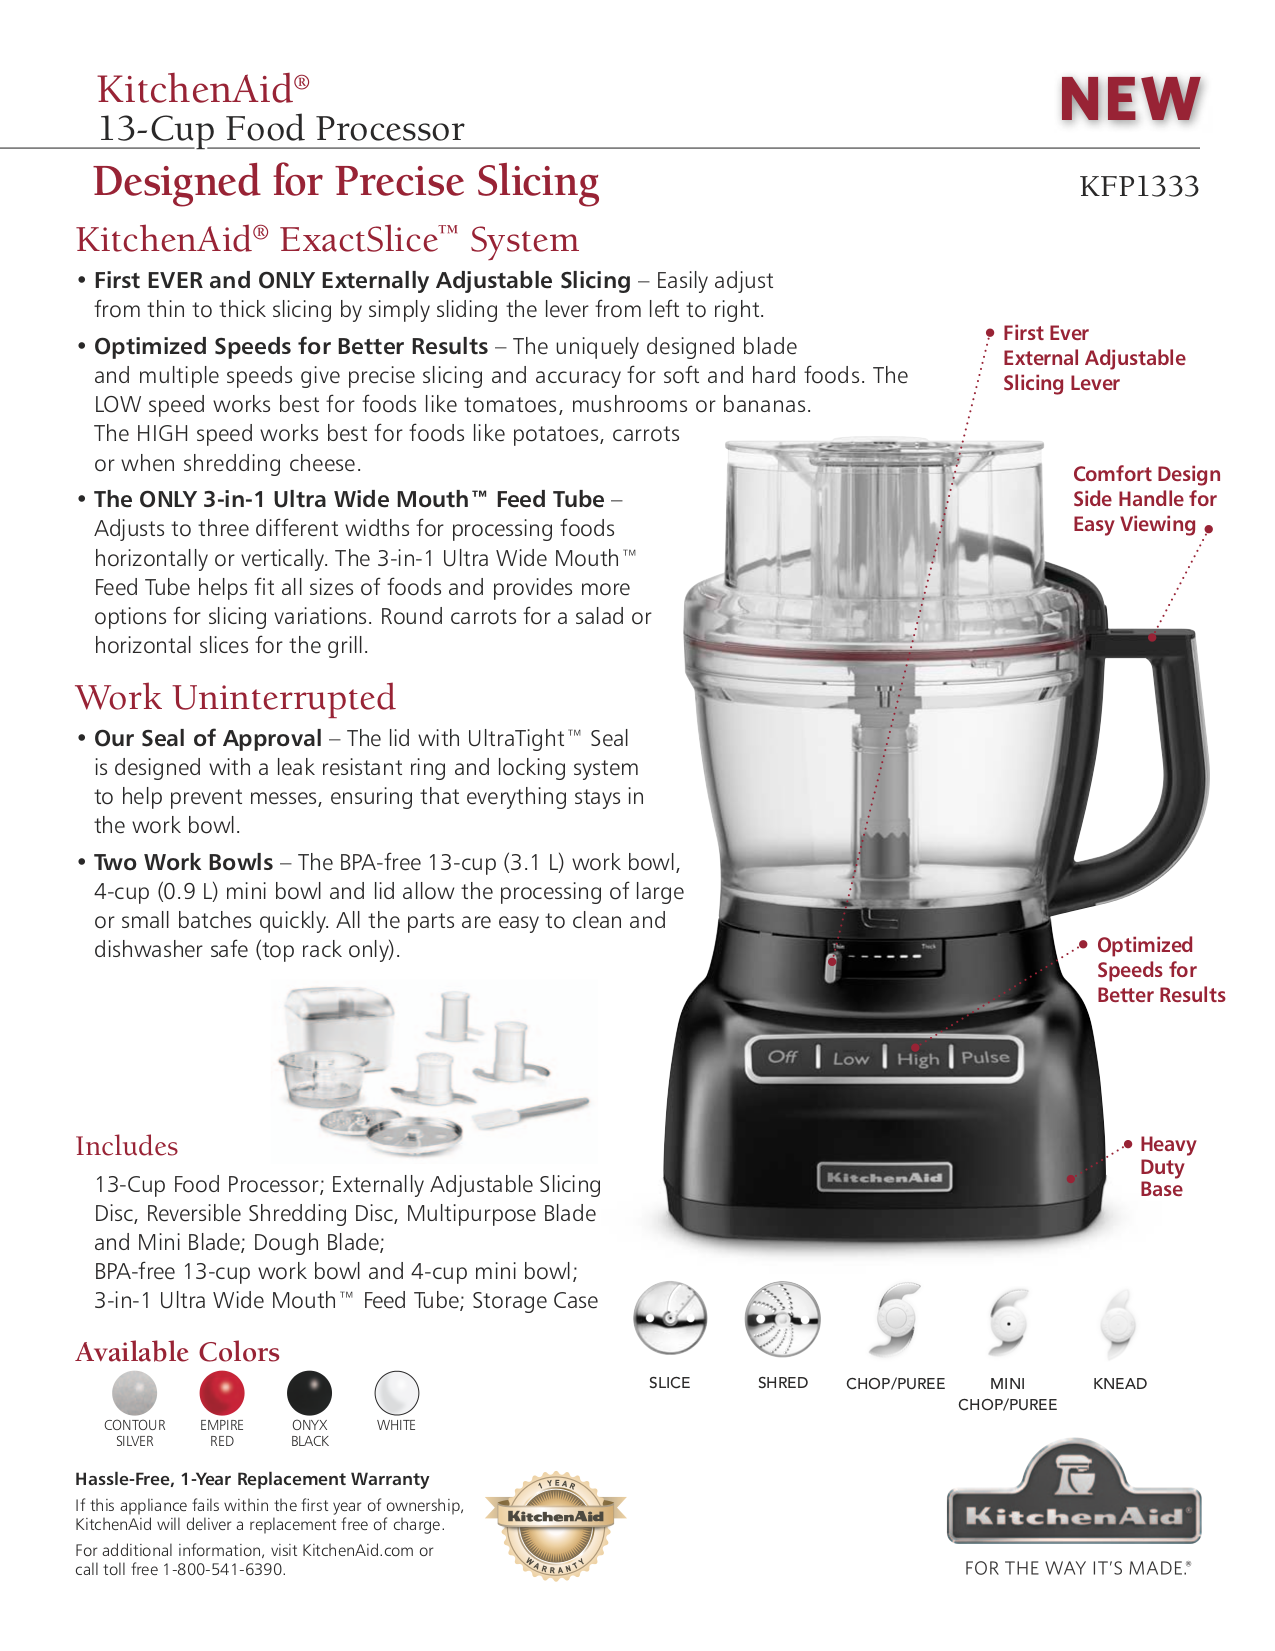 Exceptionnel Free Pdf For Kitchenaid Kfp1333 Food Processor Manual